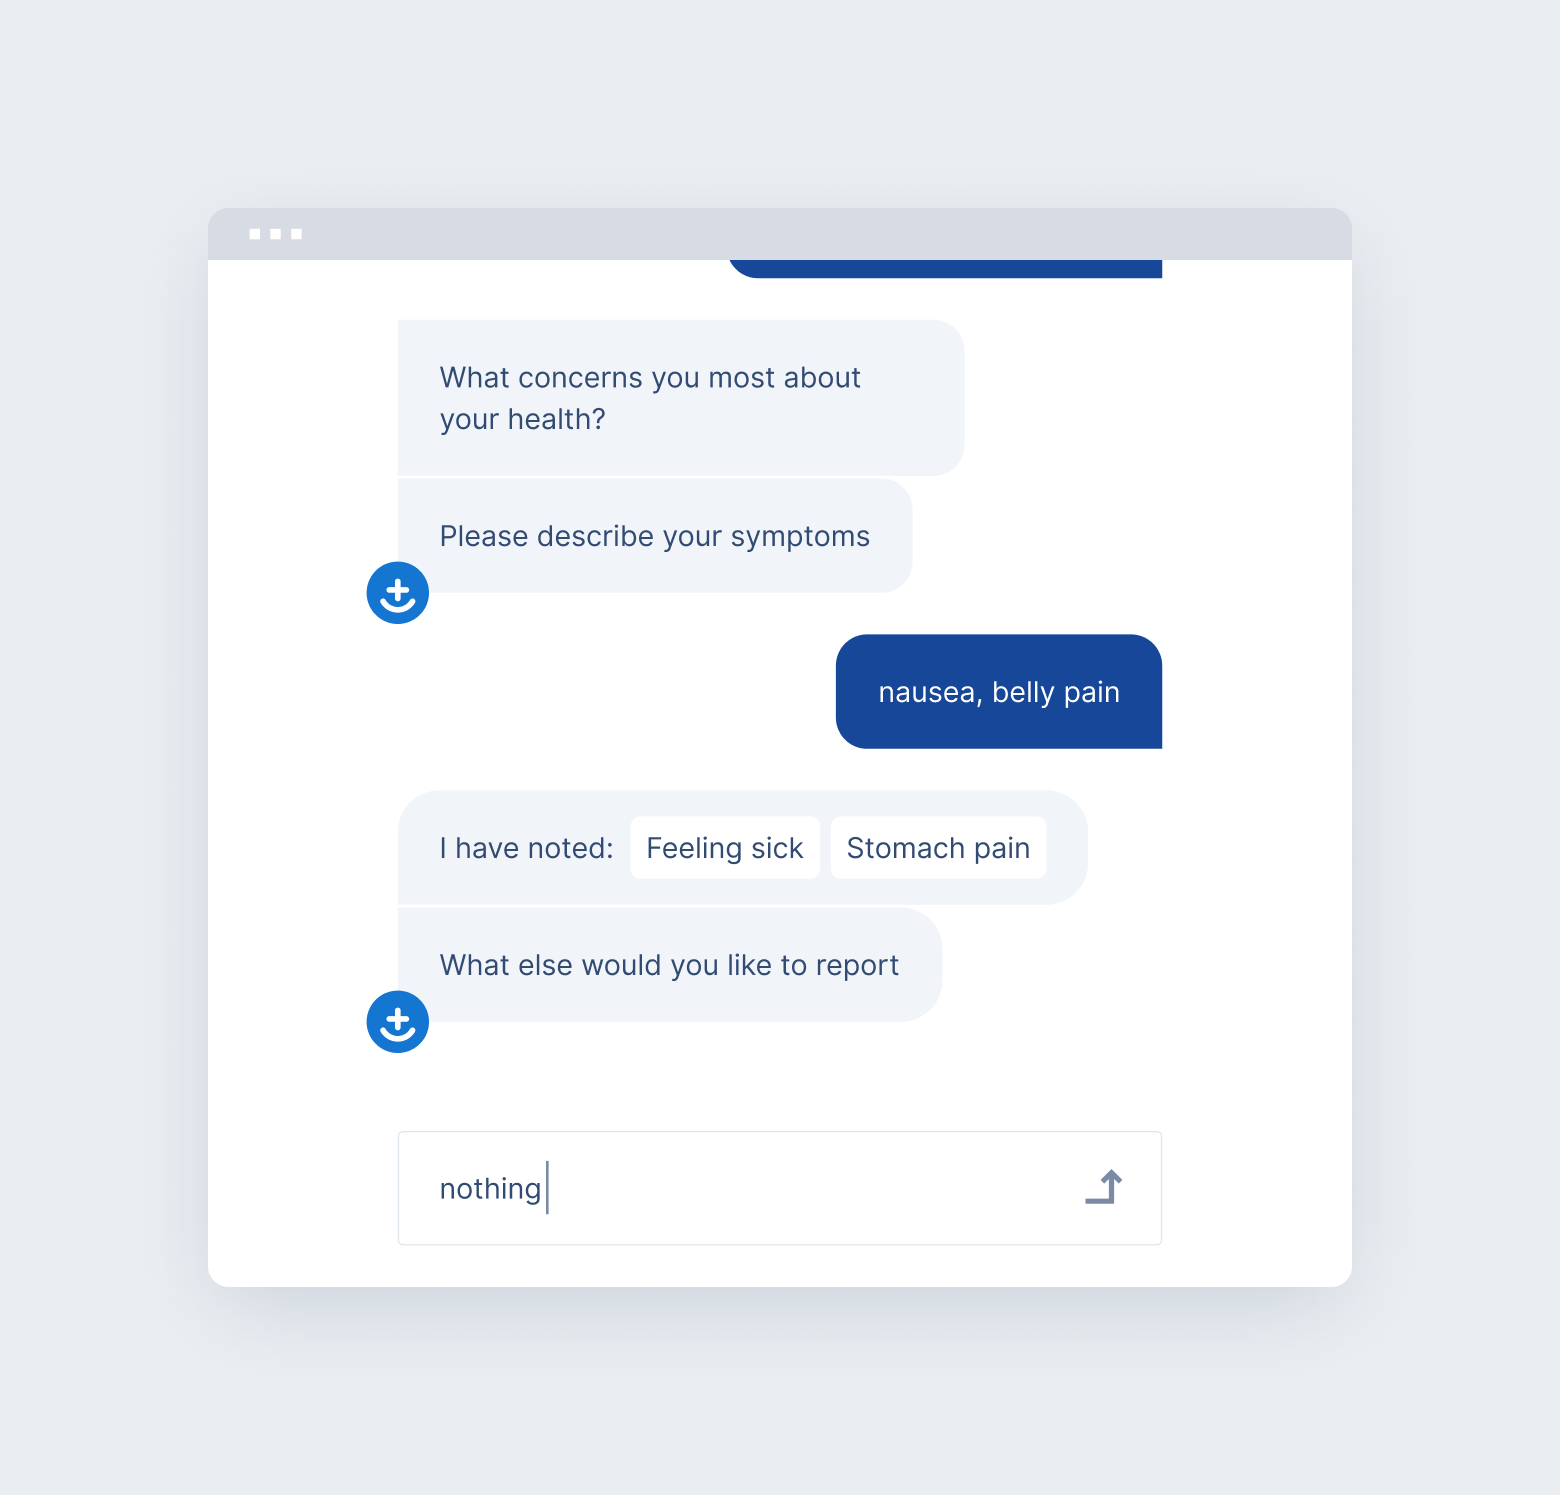 Example: The medical chatbot at Symptomate asks users about other symptoms they would like to report. It also translates common terms to the medical language.